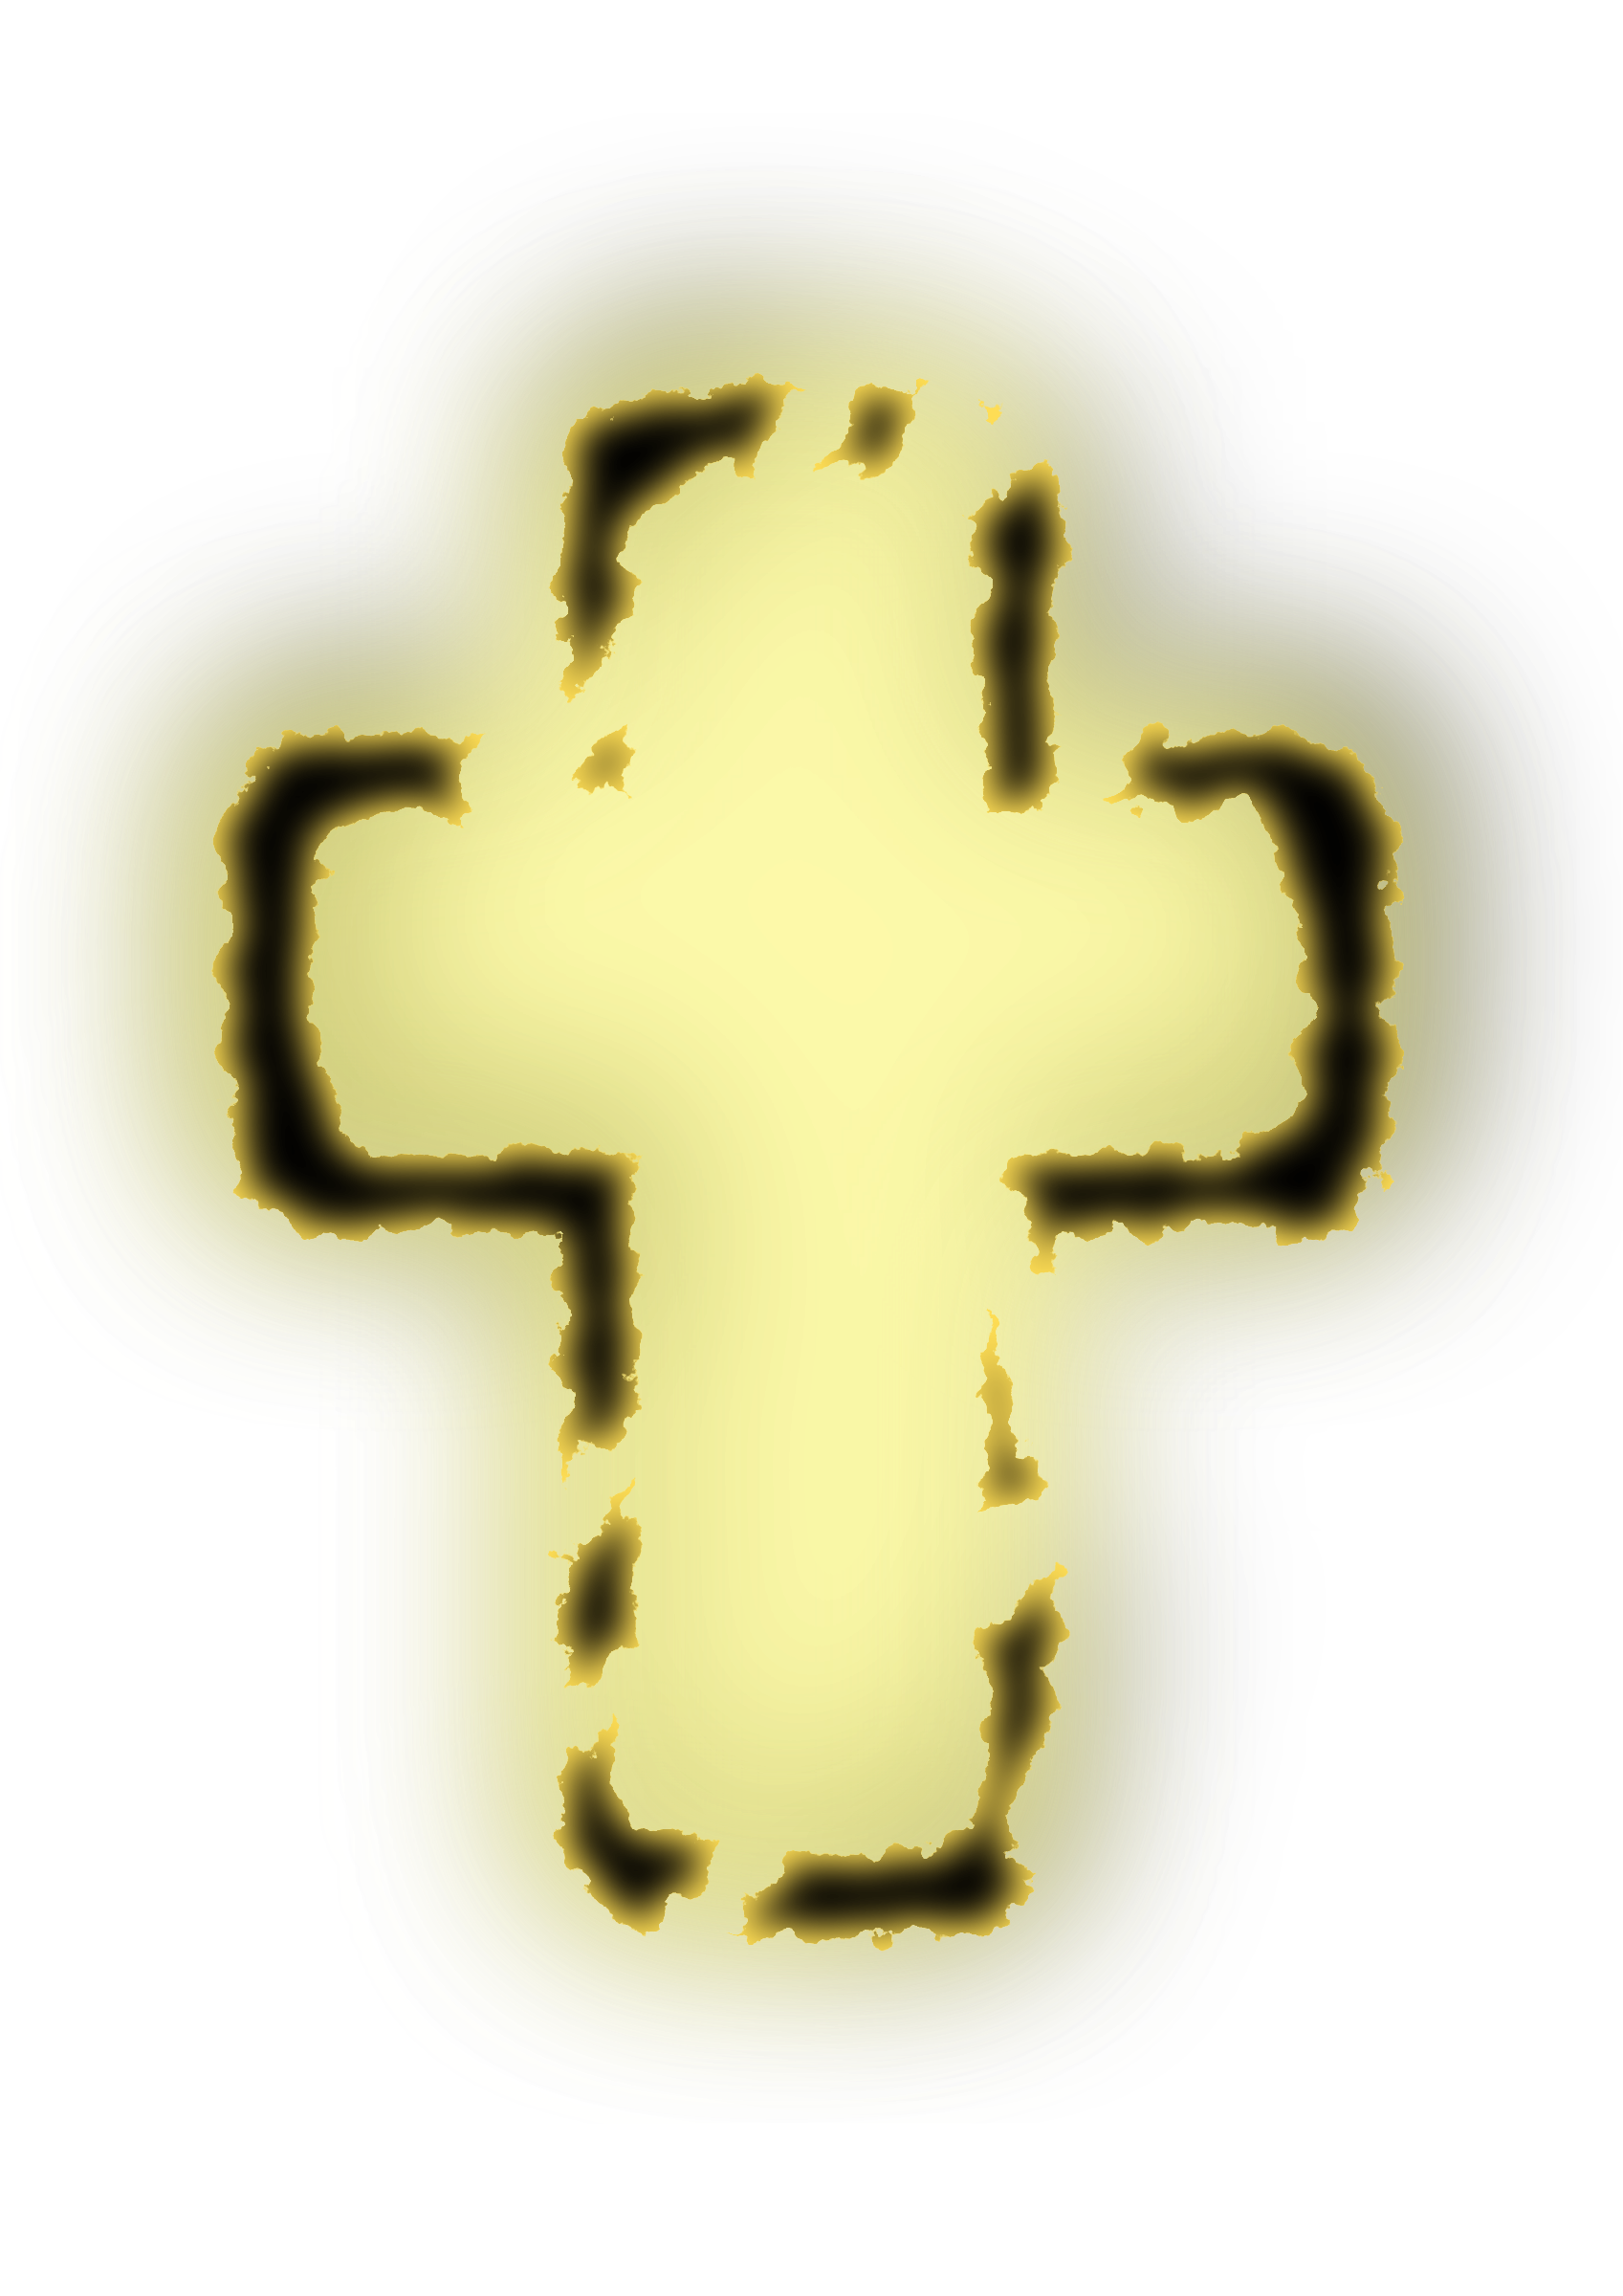 Glowing cross clipart svg royalty free library Clipart - glowing cross svg royalty free library